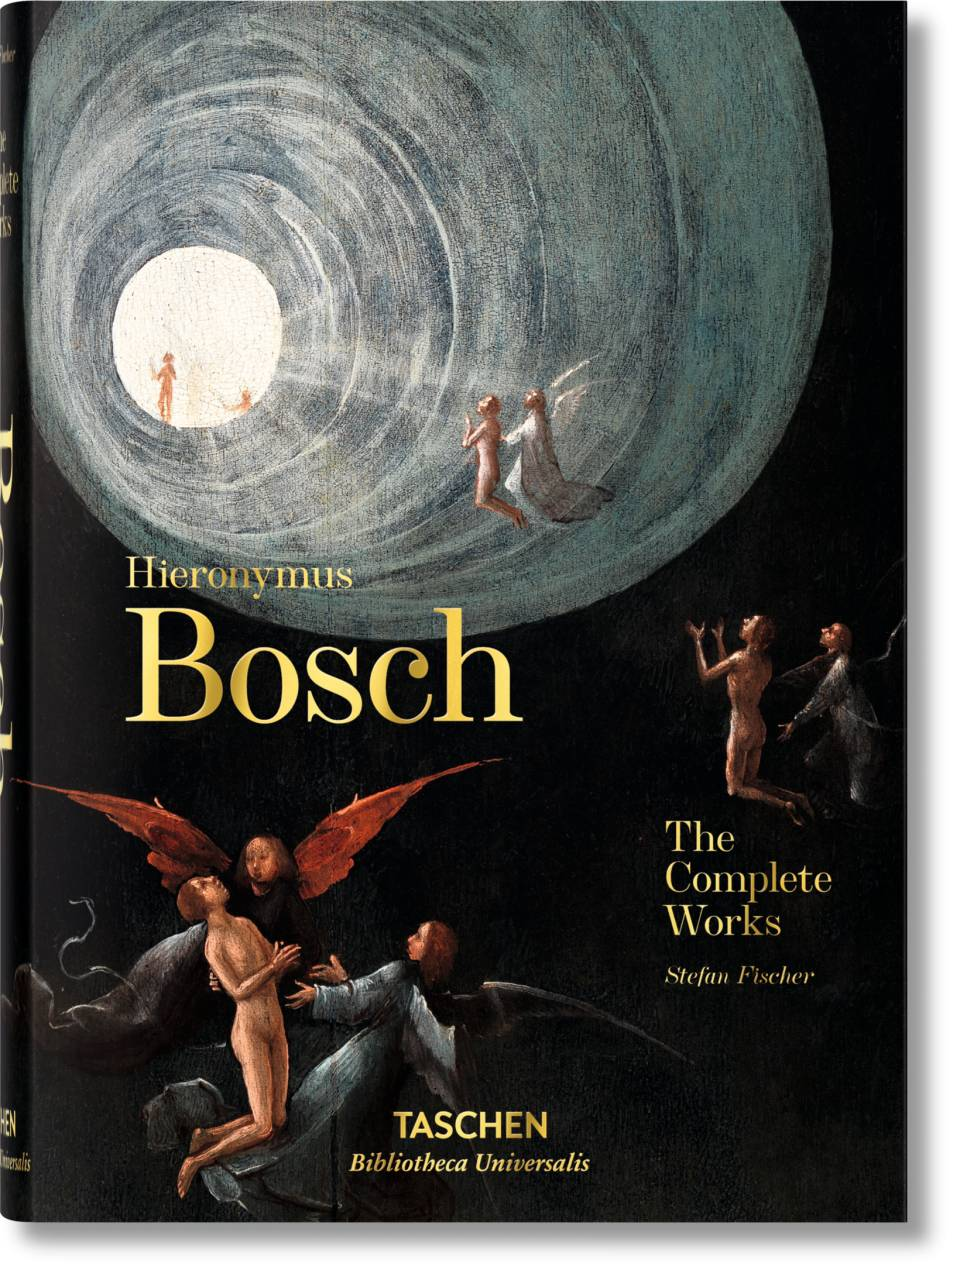 Hieronymus Bosch. The Complete Works - image 1